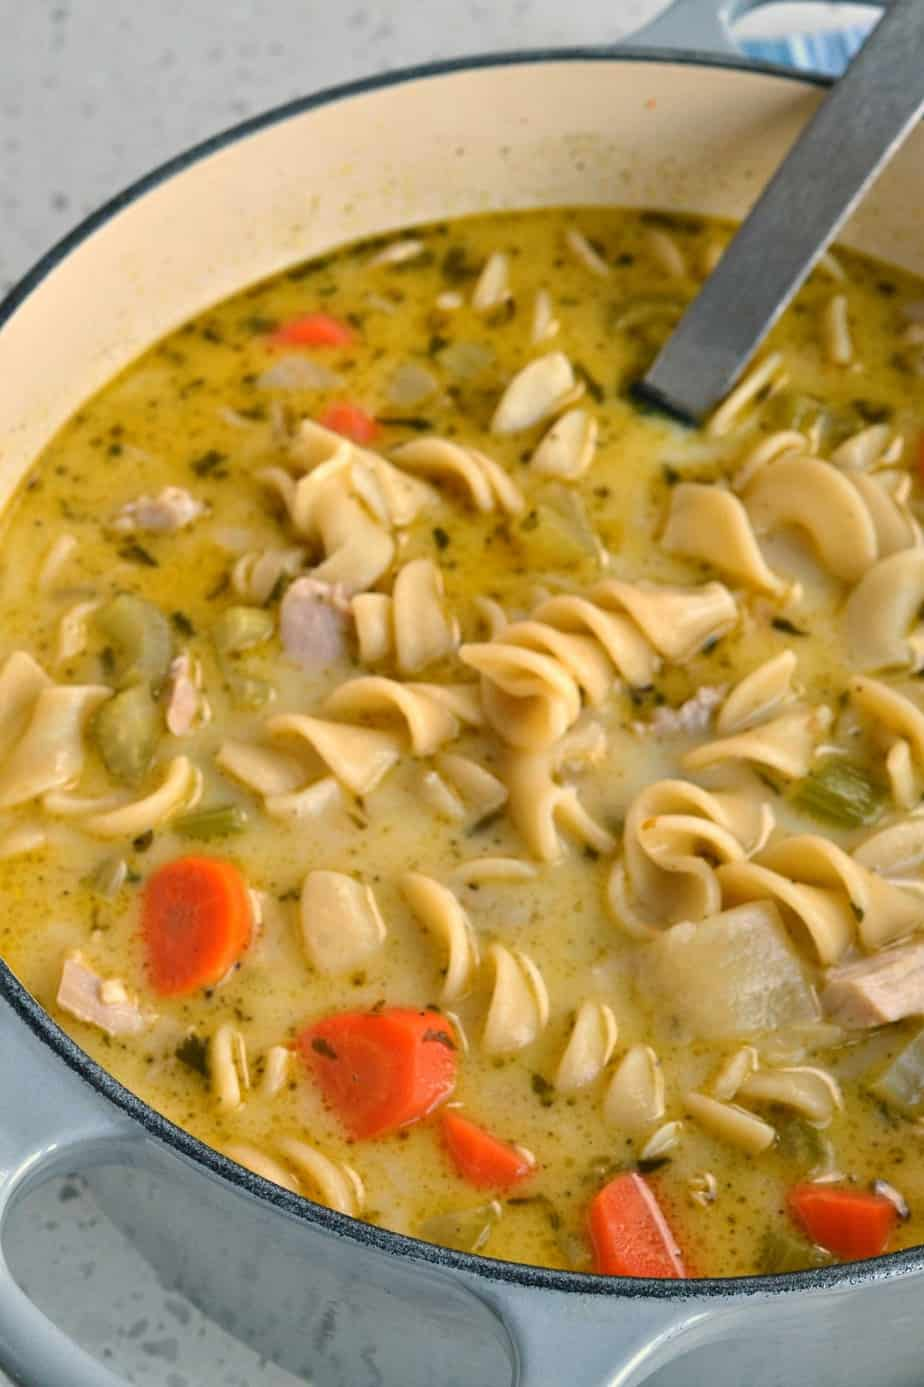 This Chicken Noodle Soup is plump full of sweet onion, celery, garlic, egg noodles and rotisserie chicken.